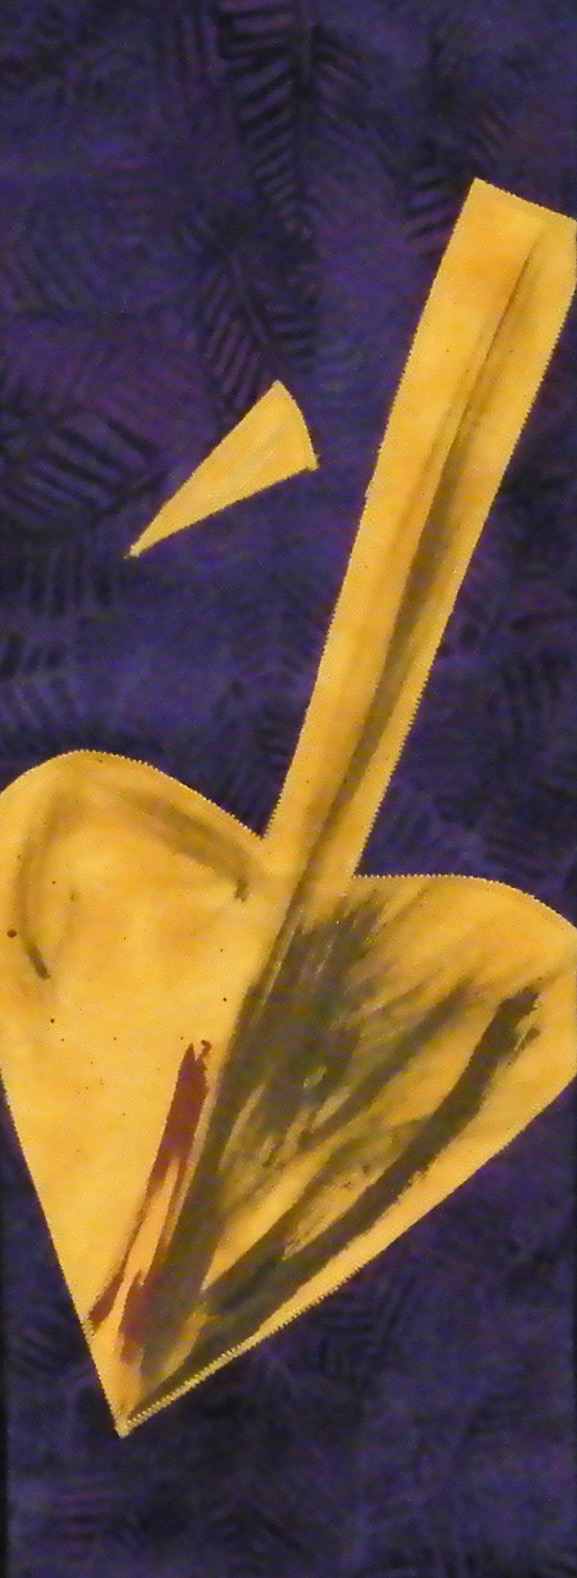 Palm to spear stole - Telling the story of Lent